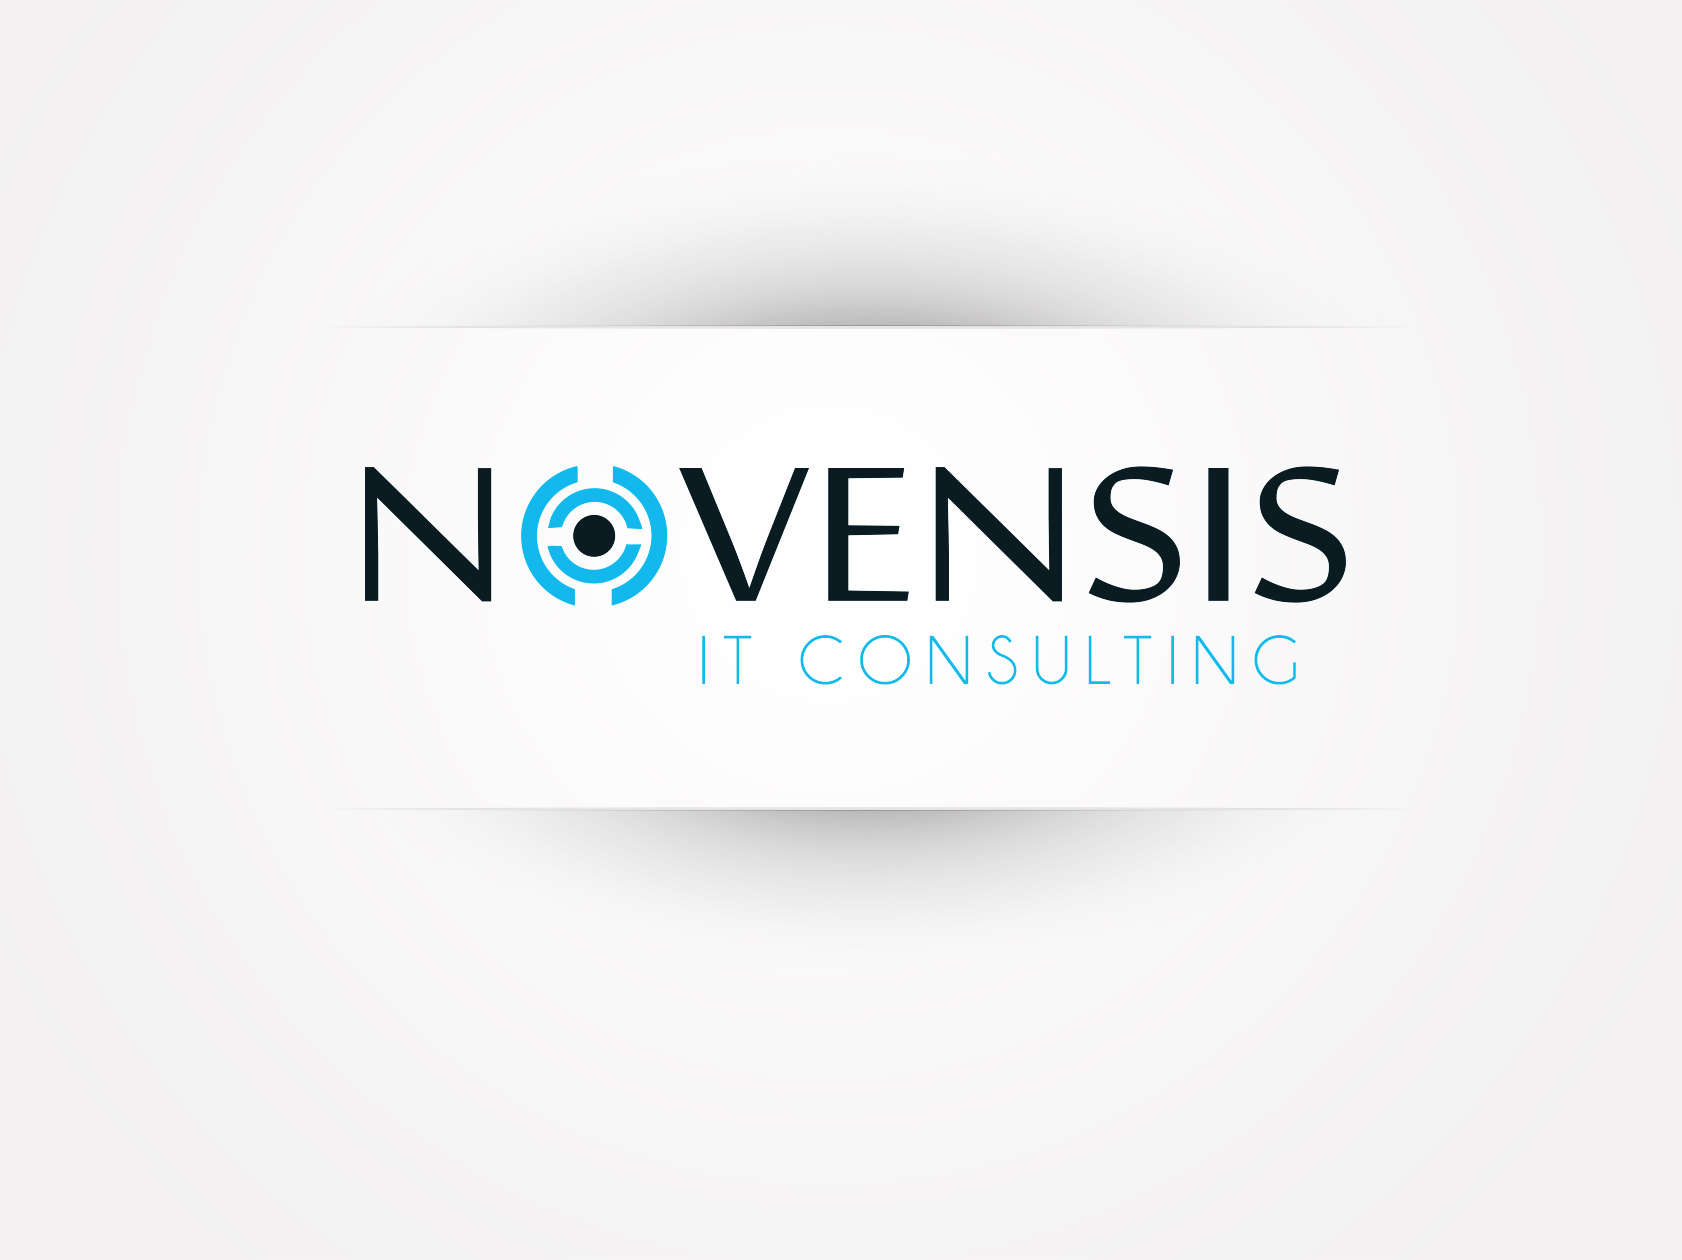 Logo Design by OmegaDesigns - Entry No. 152 in the Logo Design Contest Novensis Logo Design.